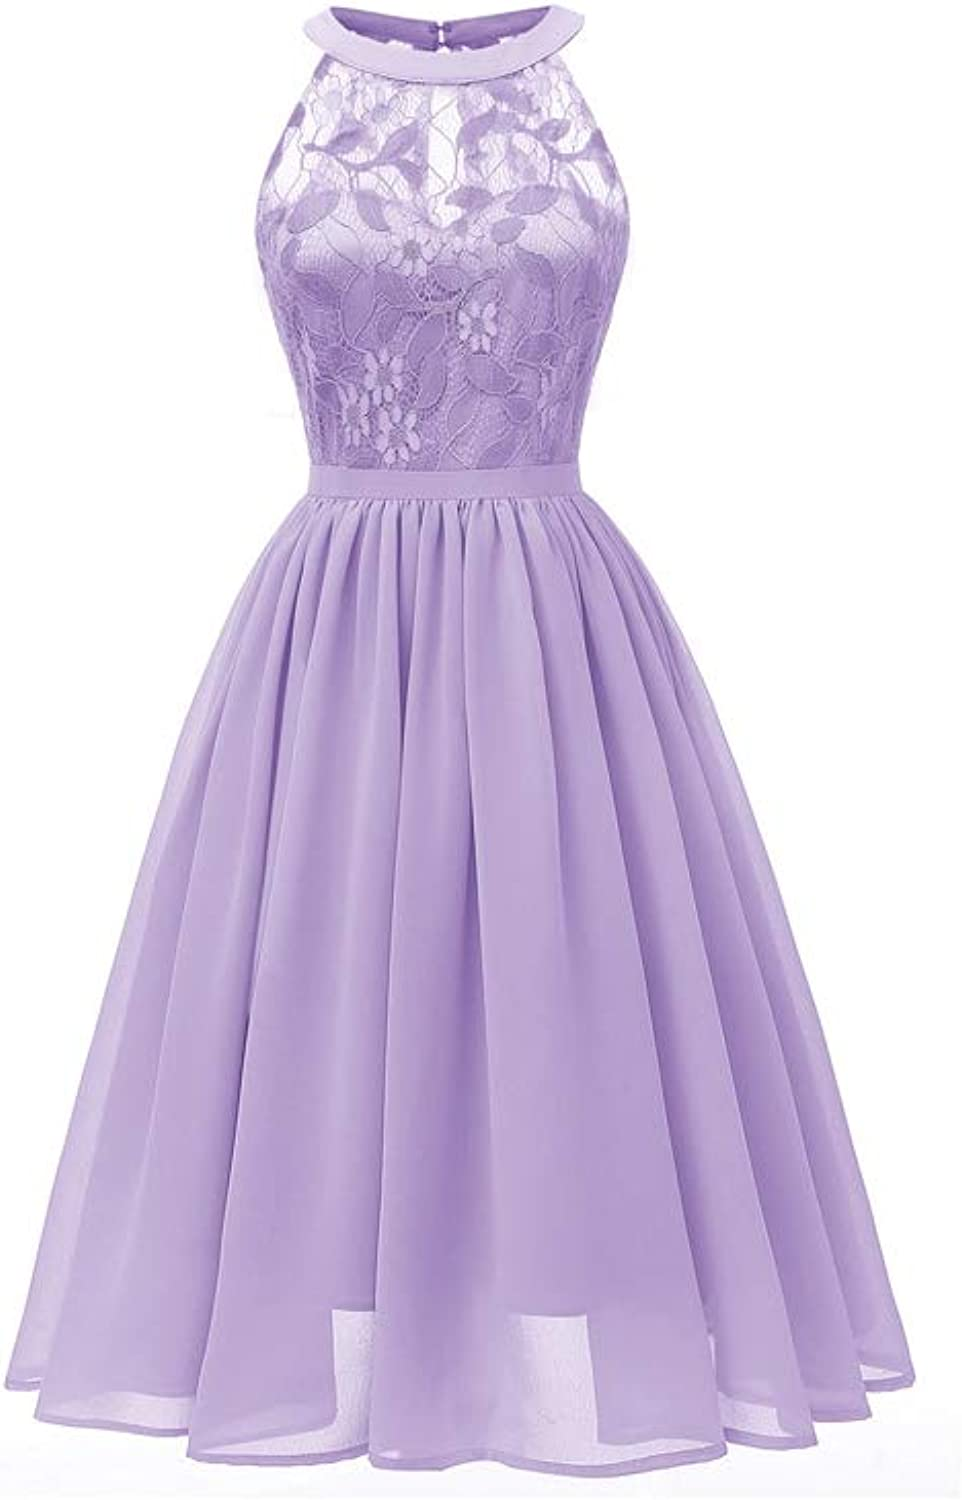 Aignse Dress Femme Women Princess Purple Floral Lace Cocktail Neckline Party A line Swing Dress